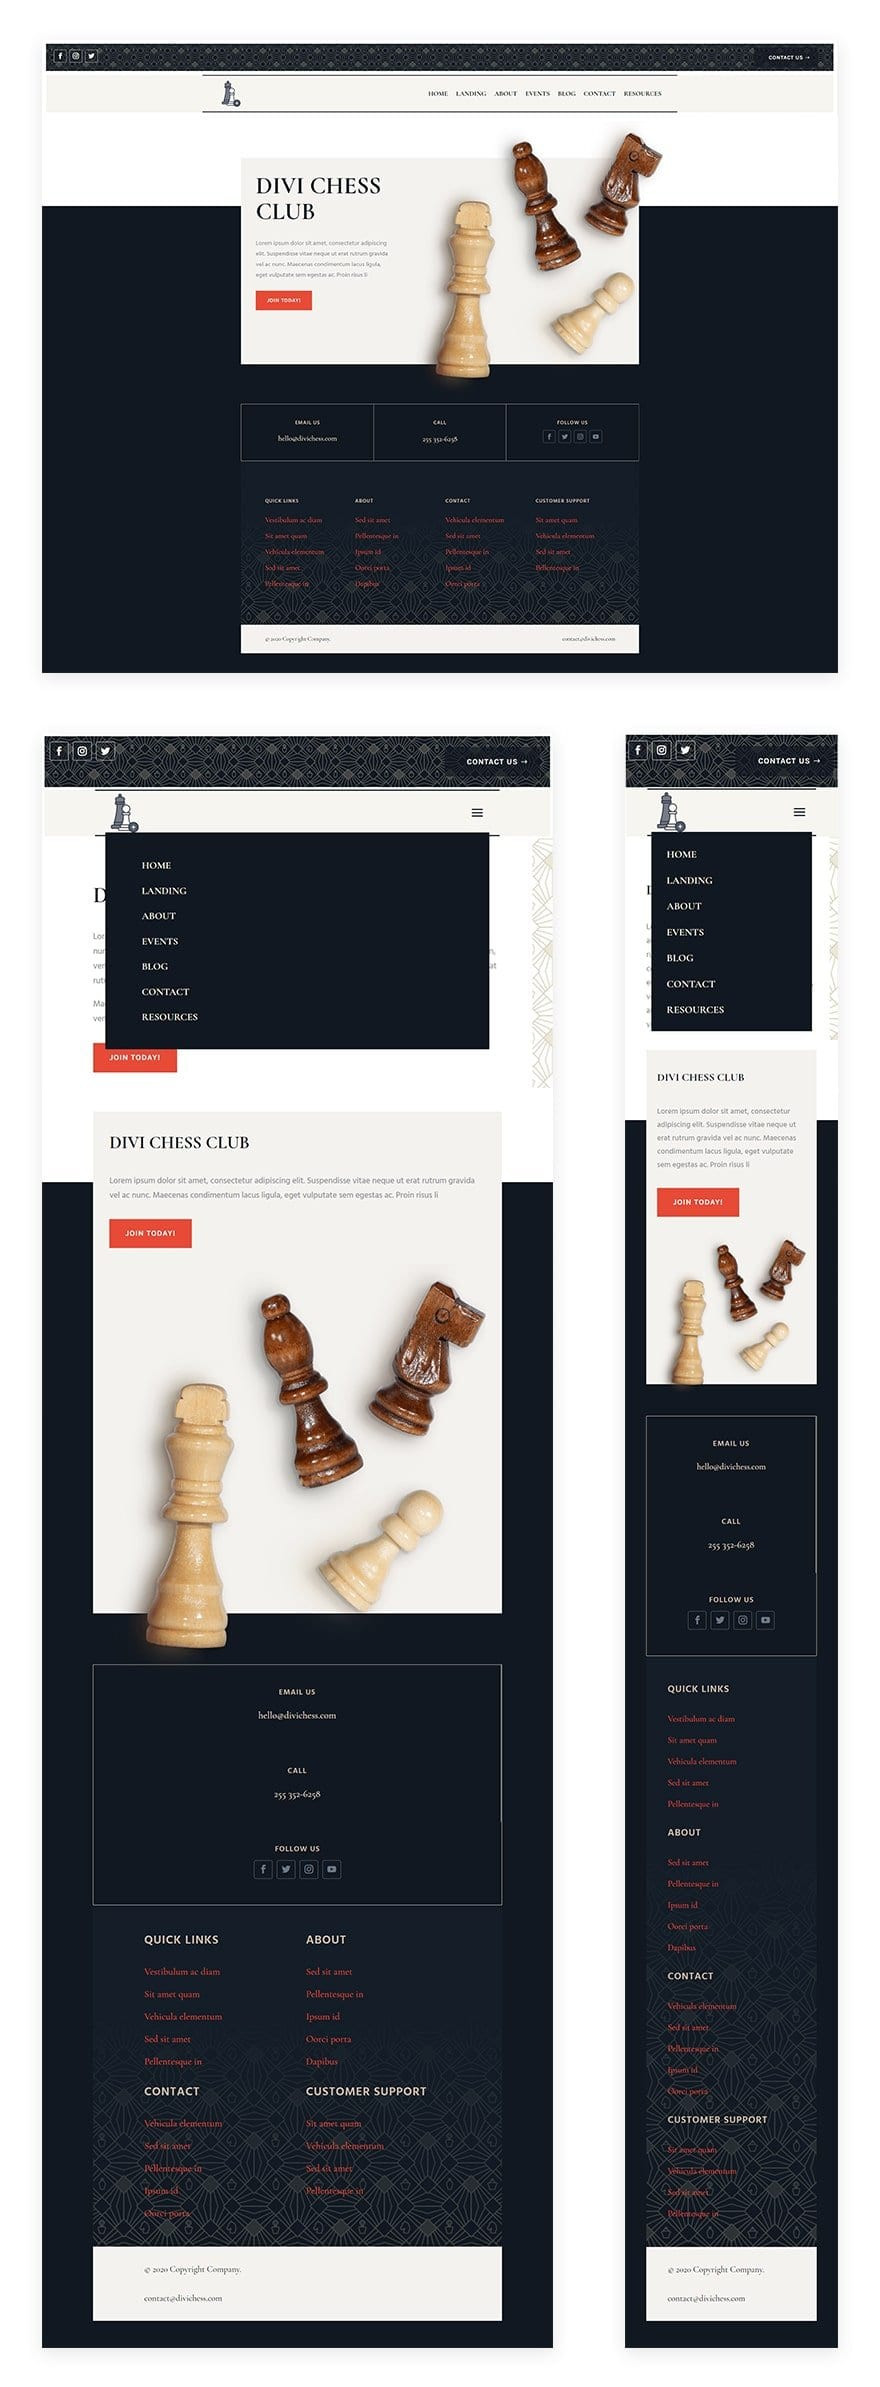 download-a-free-header-footer-for-divis-chess-club-layout-pack Download a FREE Header & Footer for Divi's Chess Club Layout Pack